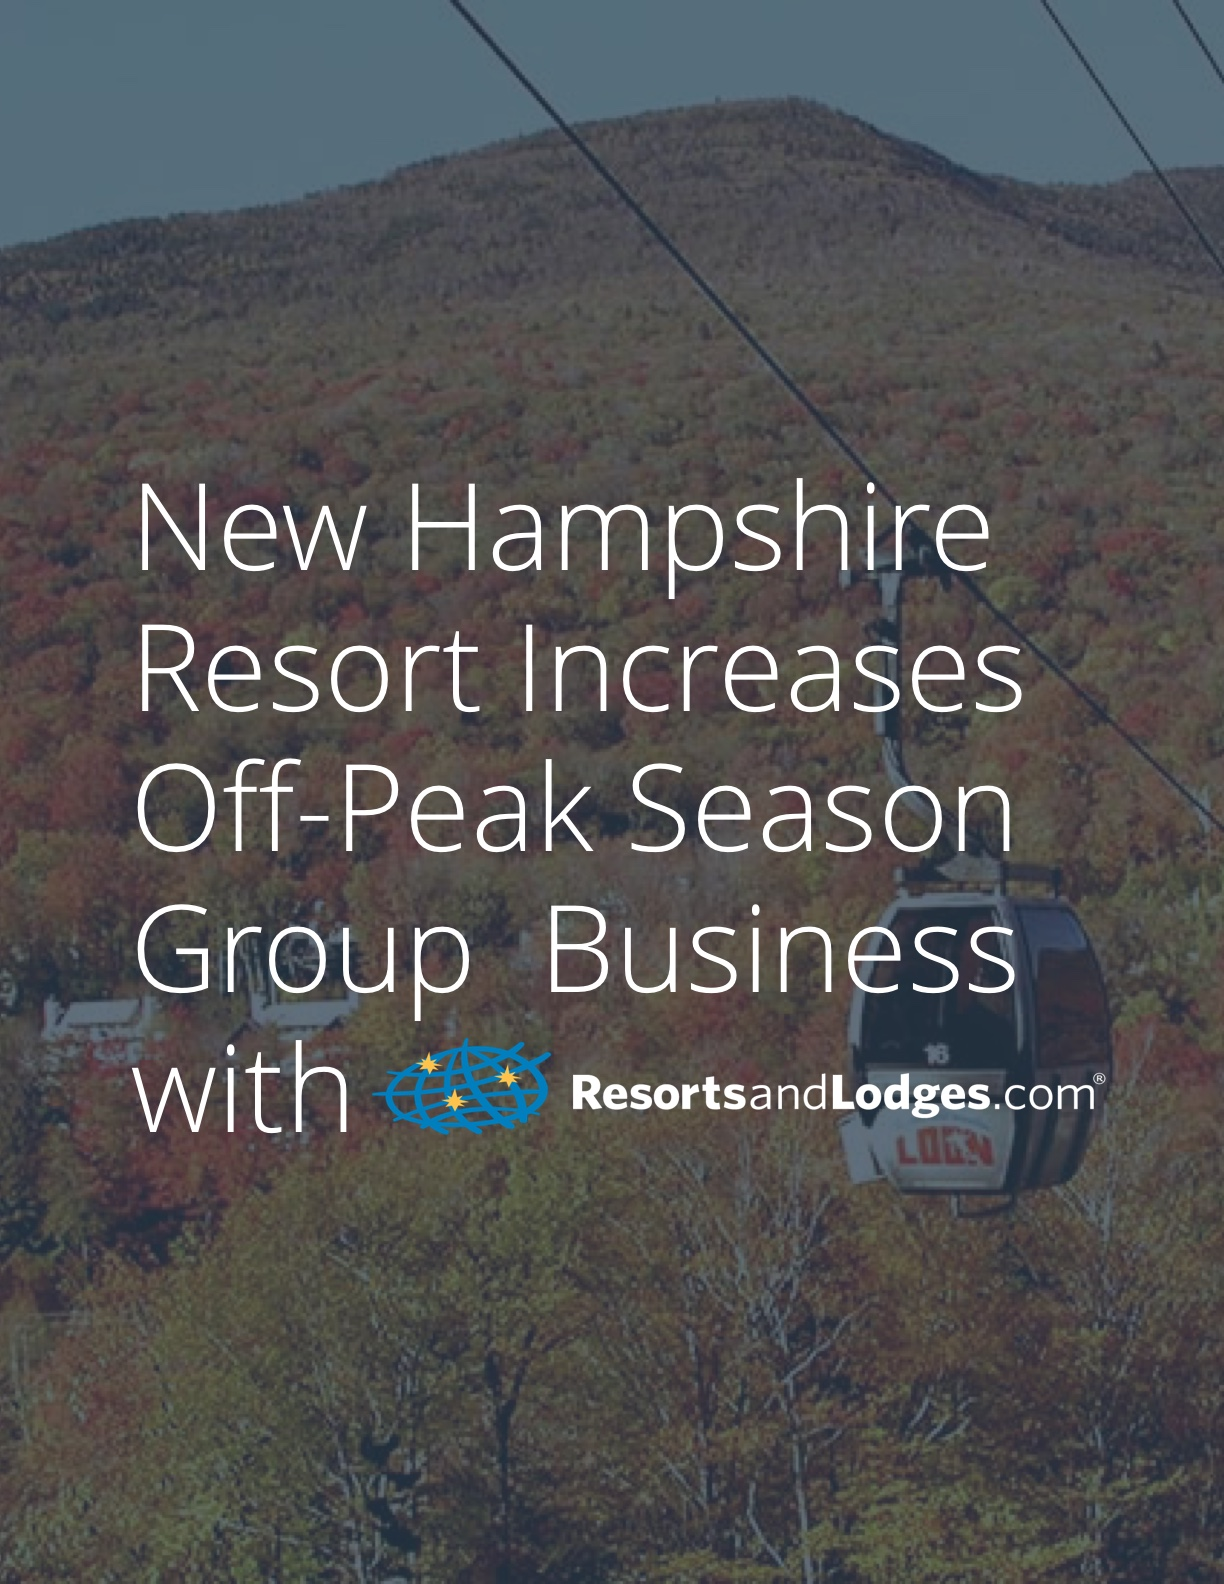 Newhamshire Mountain Club on Loon Case Study